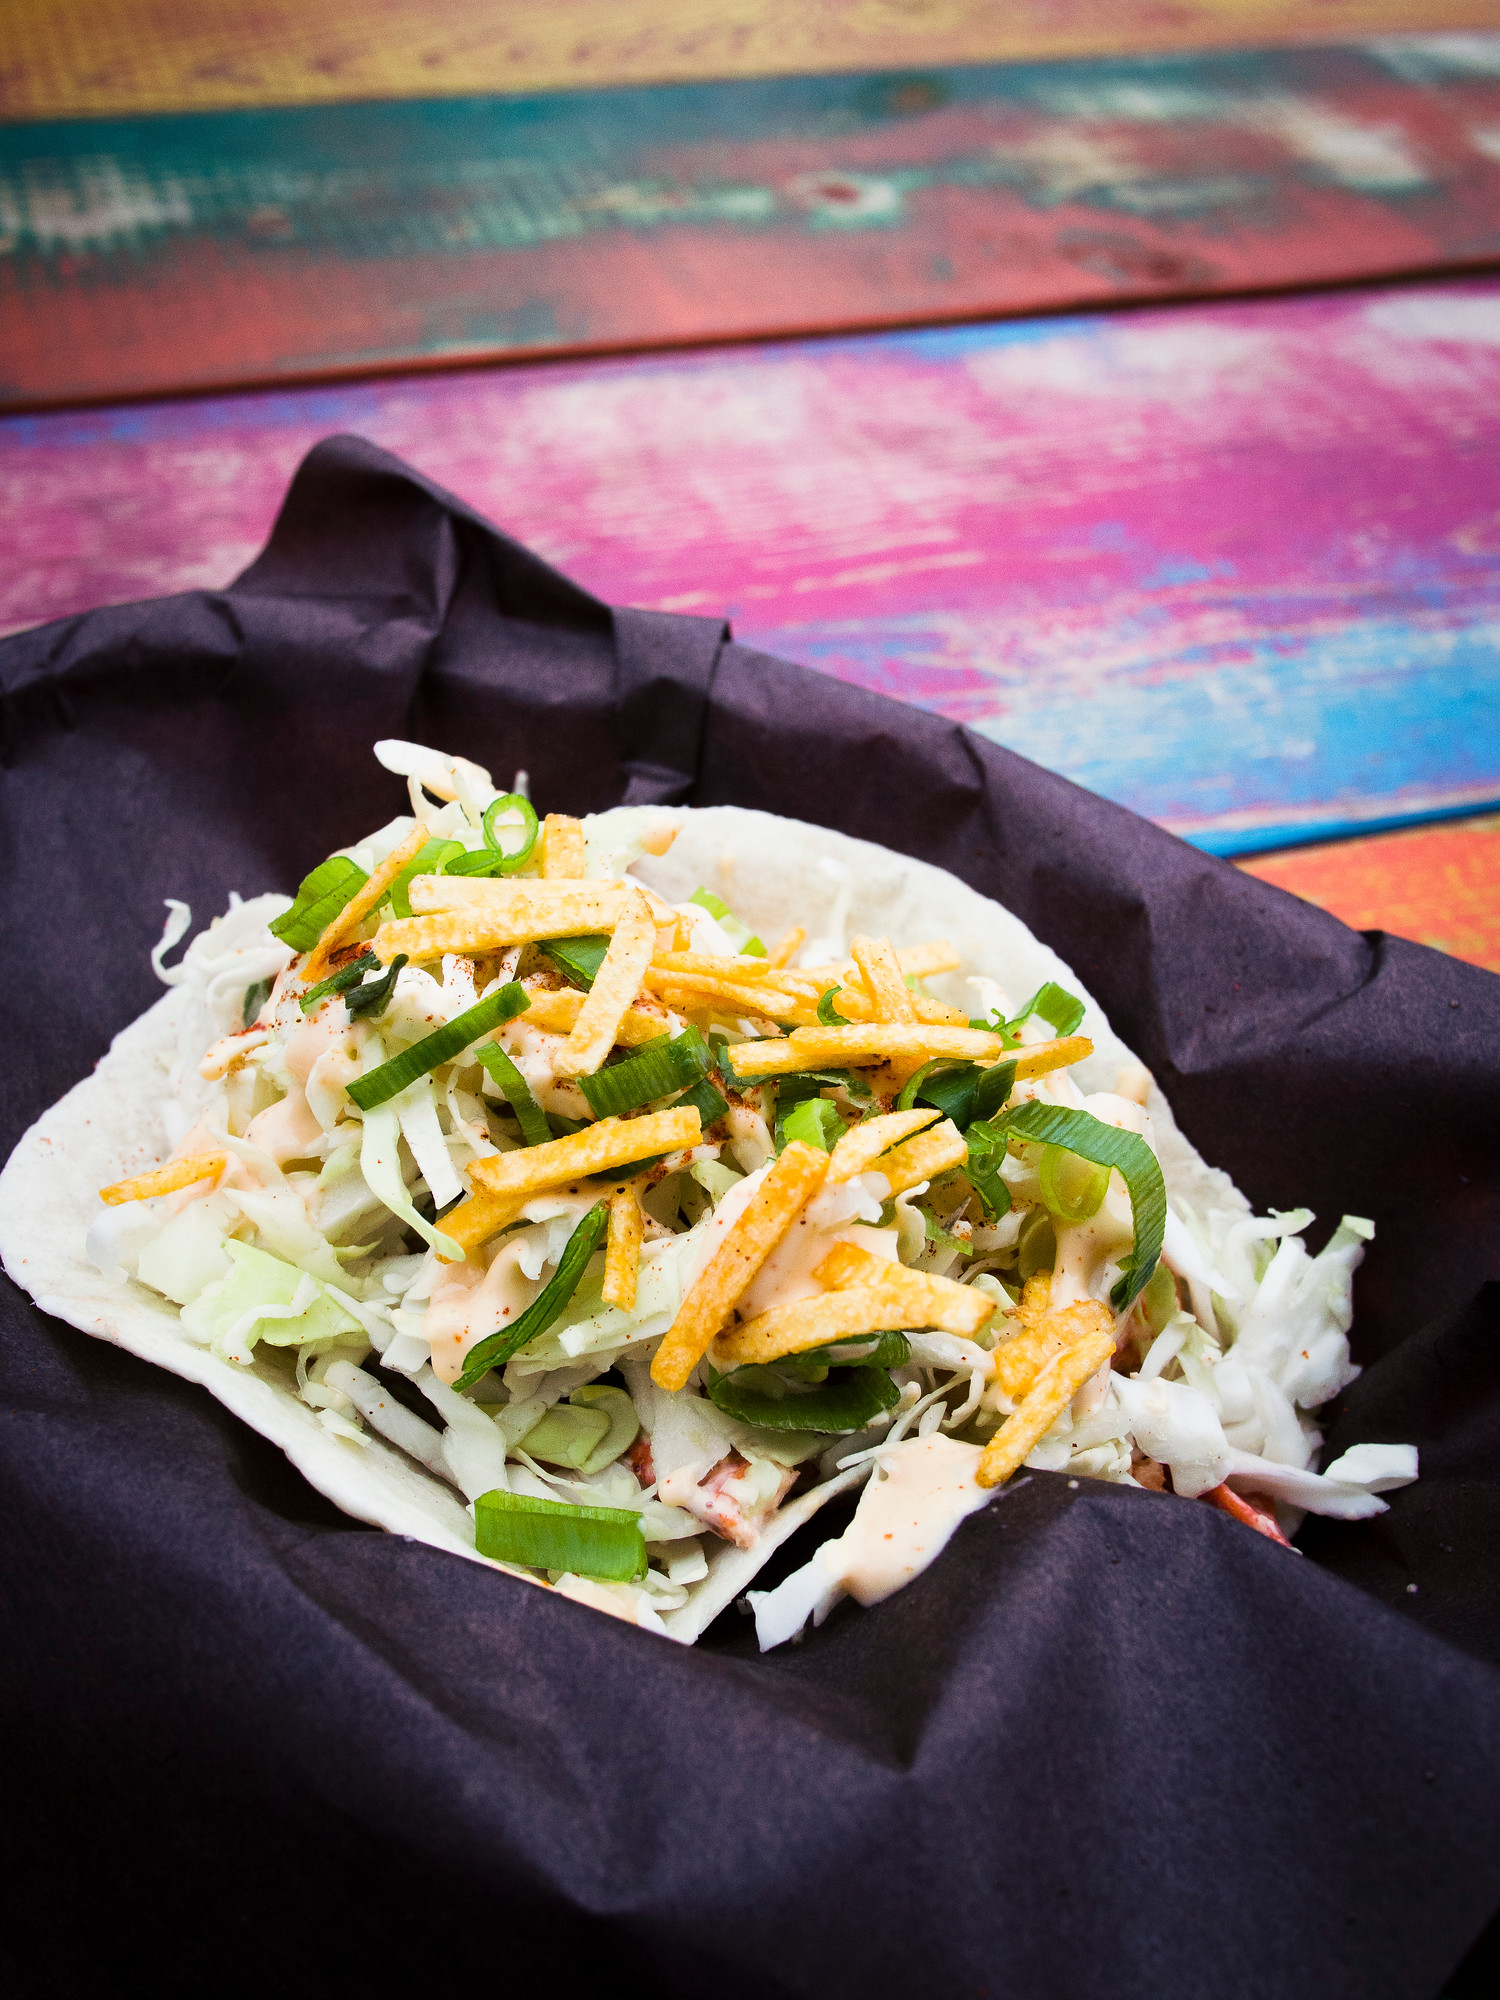 Where to Eat in PEI: Lobster taco at Sugar Skulls in Charlottetown, Prince Edward Island